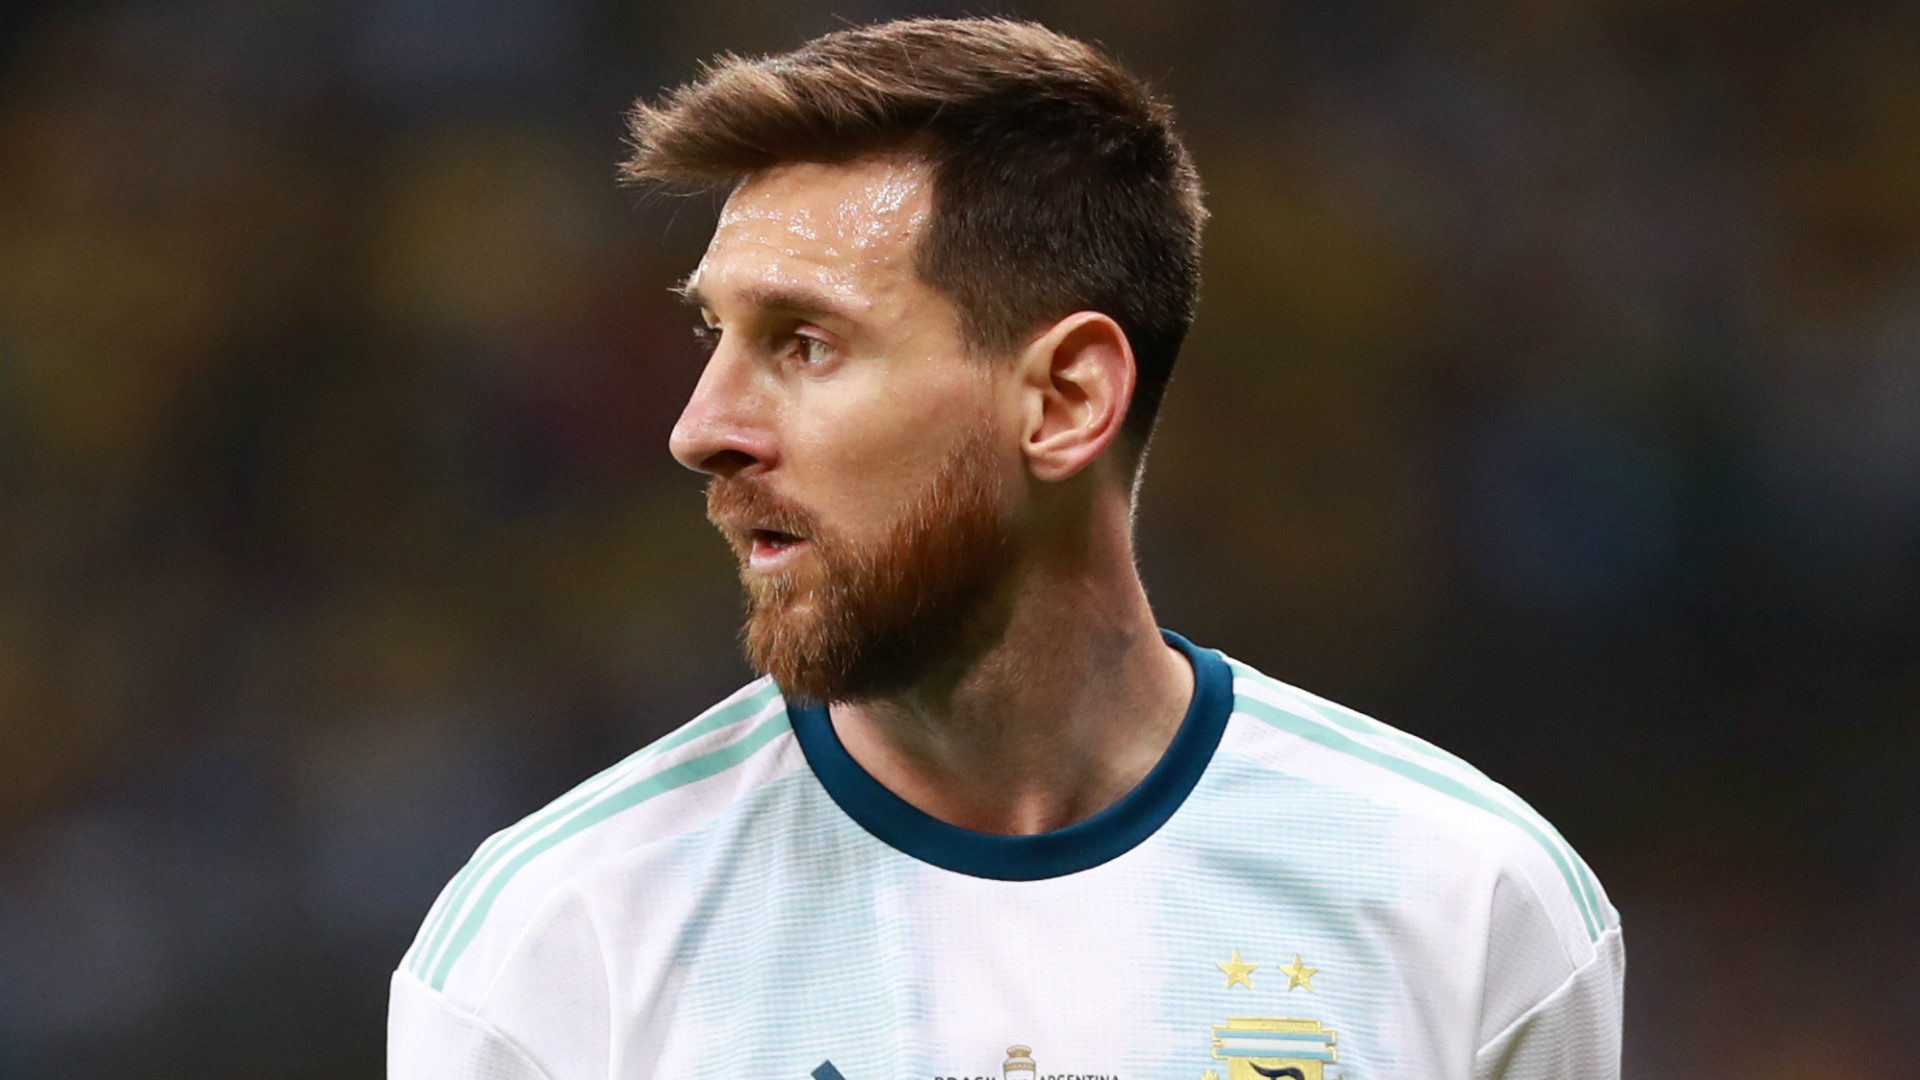 Lionel Messi dismisses reports of Inter Milan move as fake news